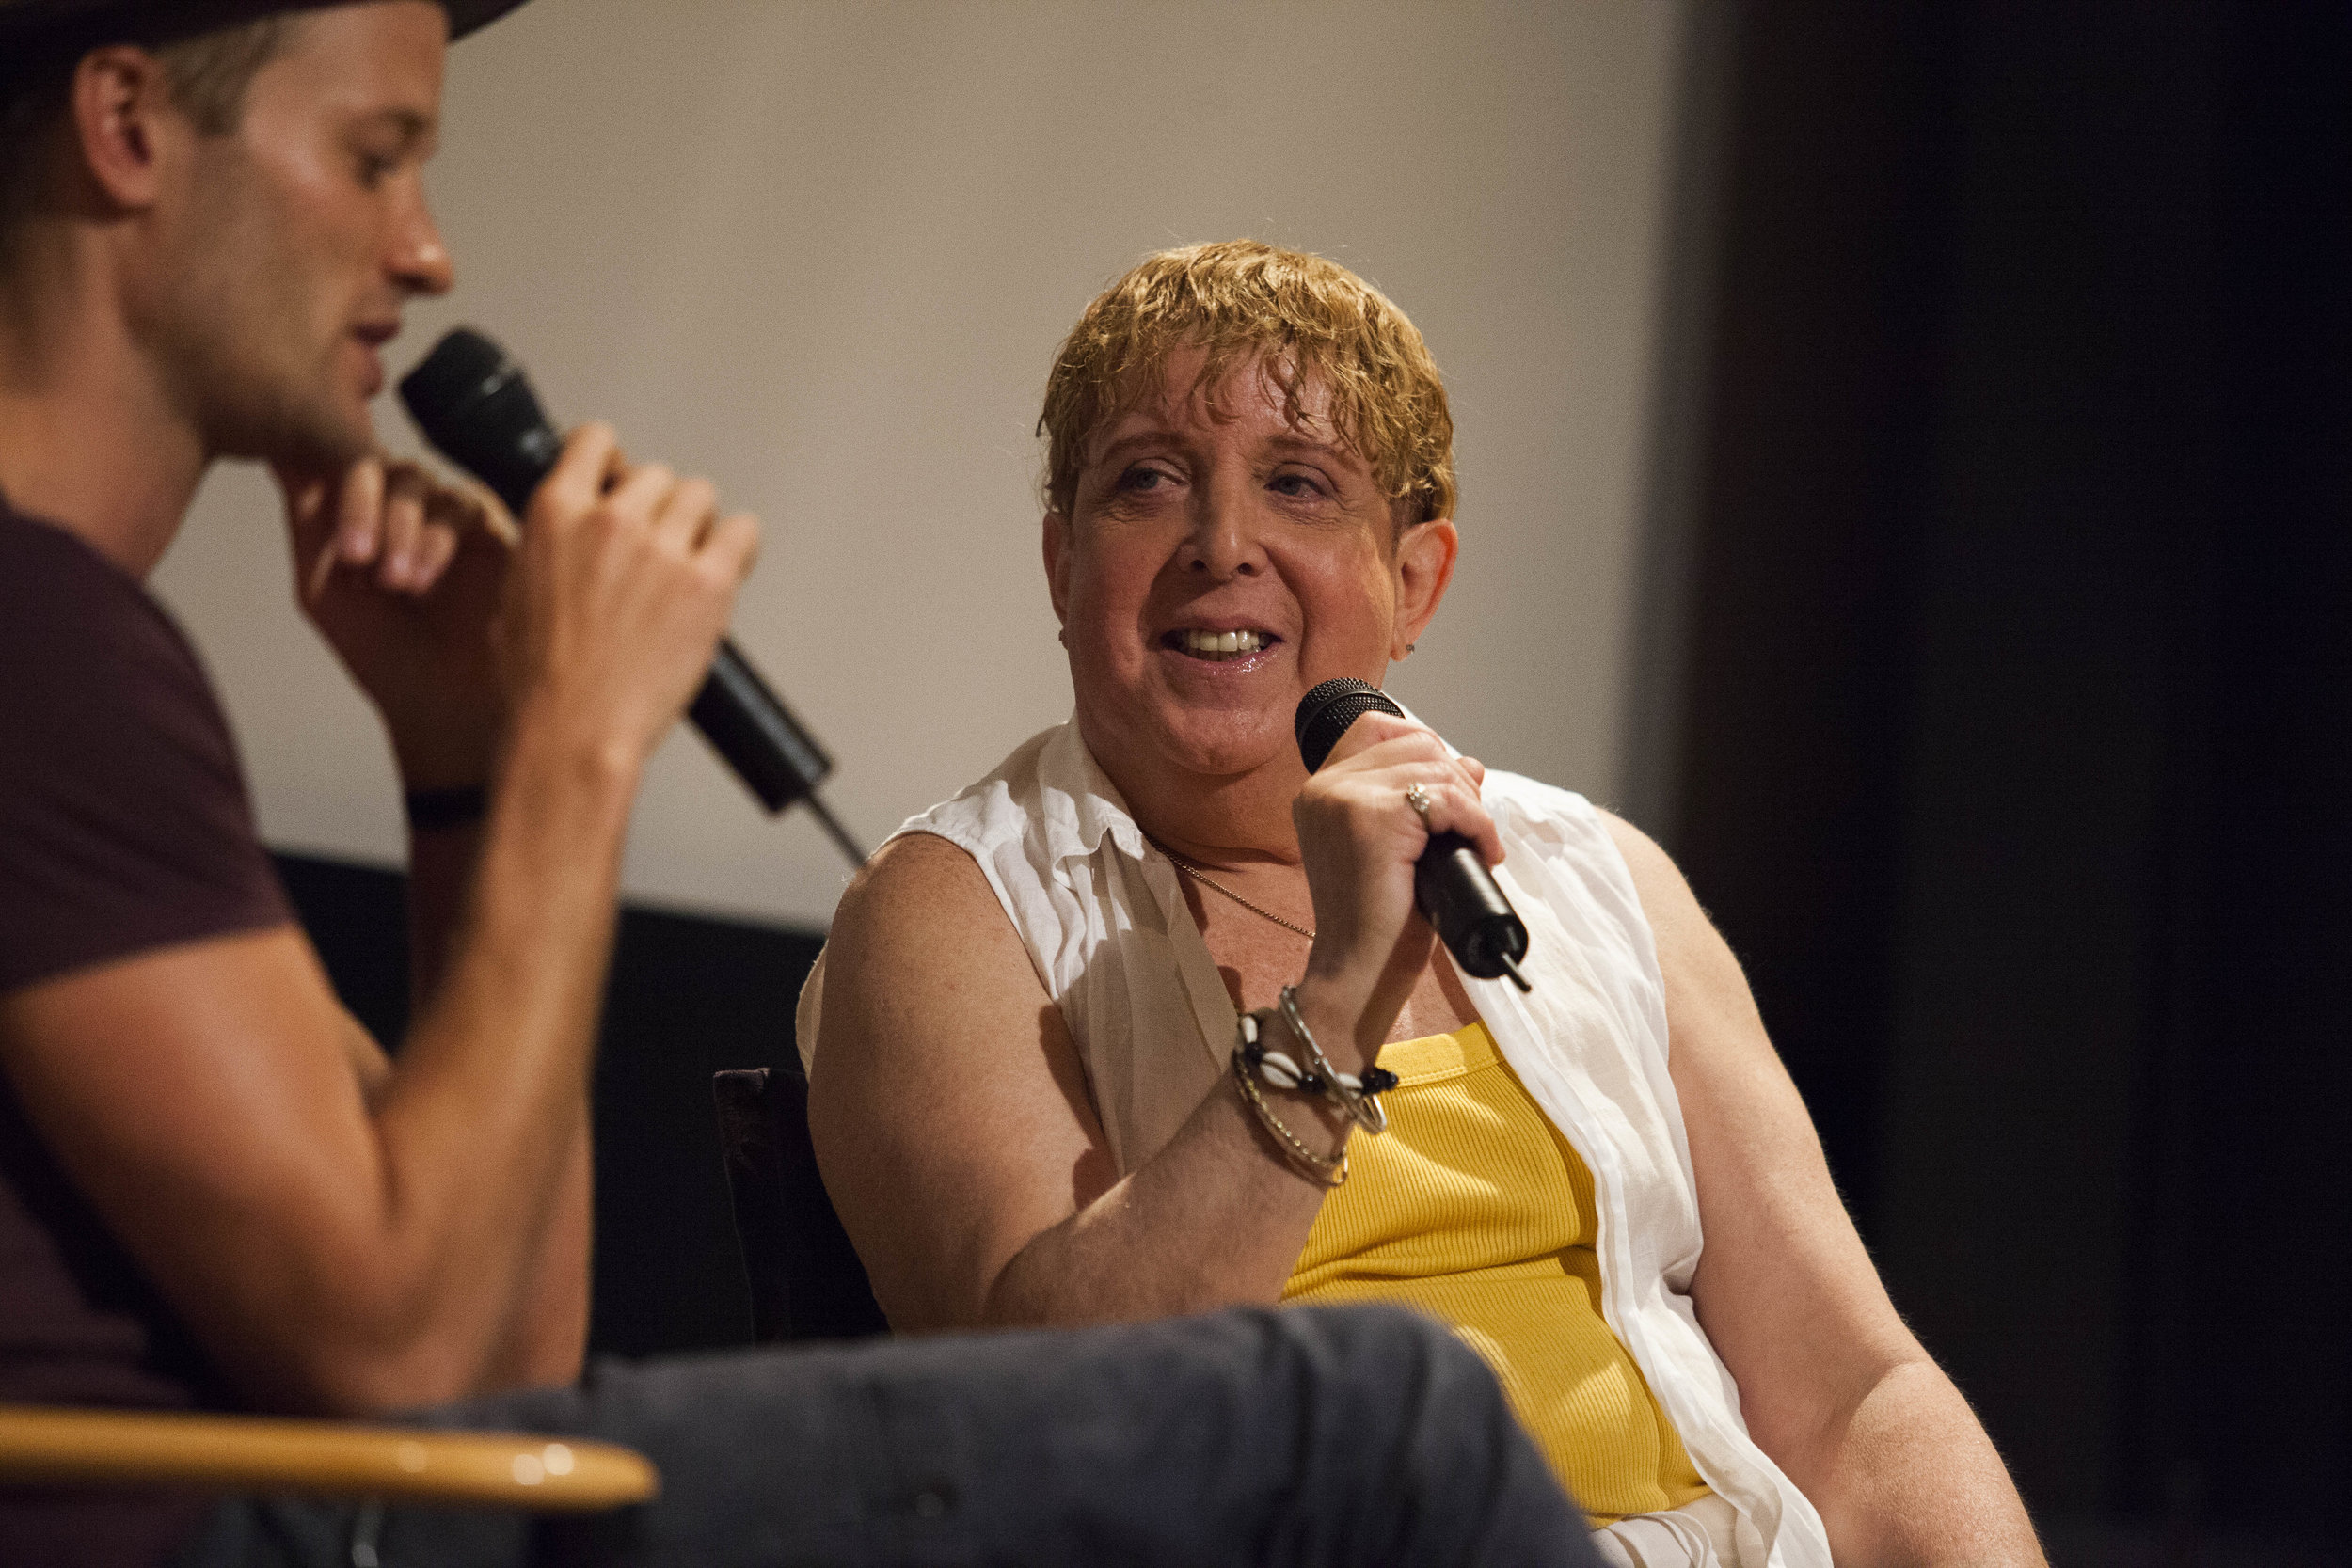 2016_06_27_The_Generations_Project_HBO_Pride_Event_042.JPG